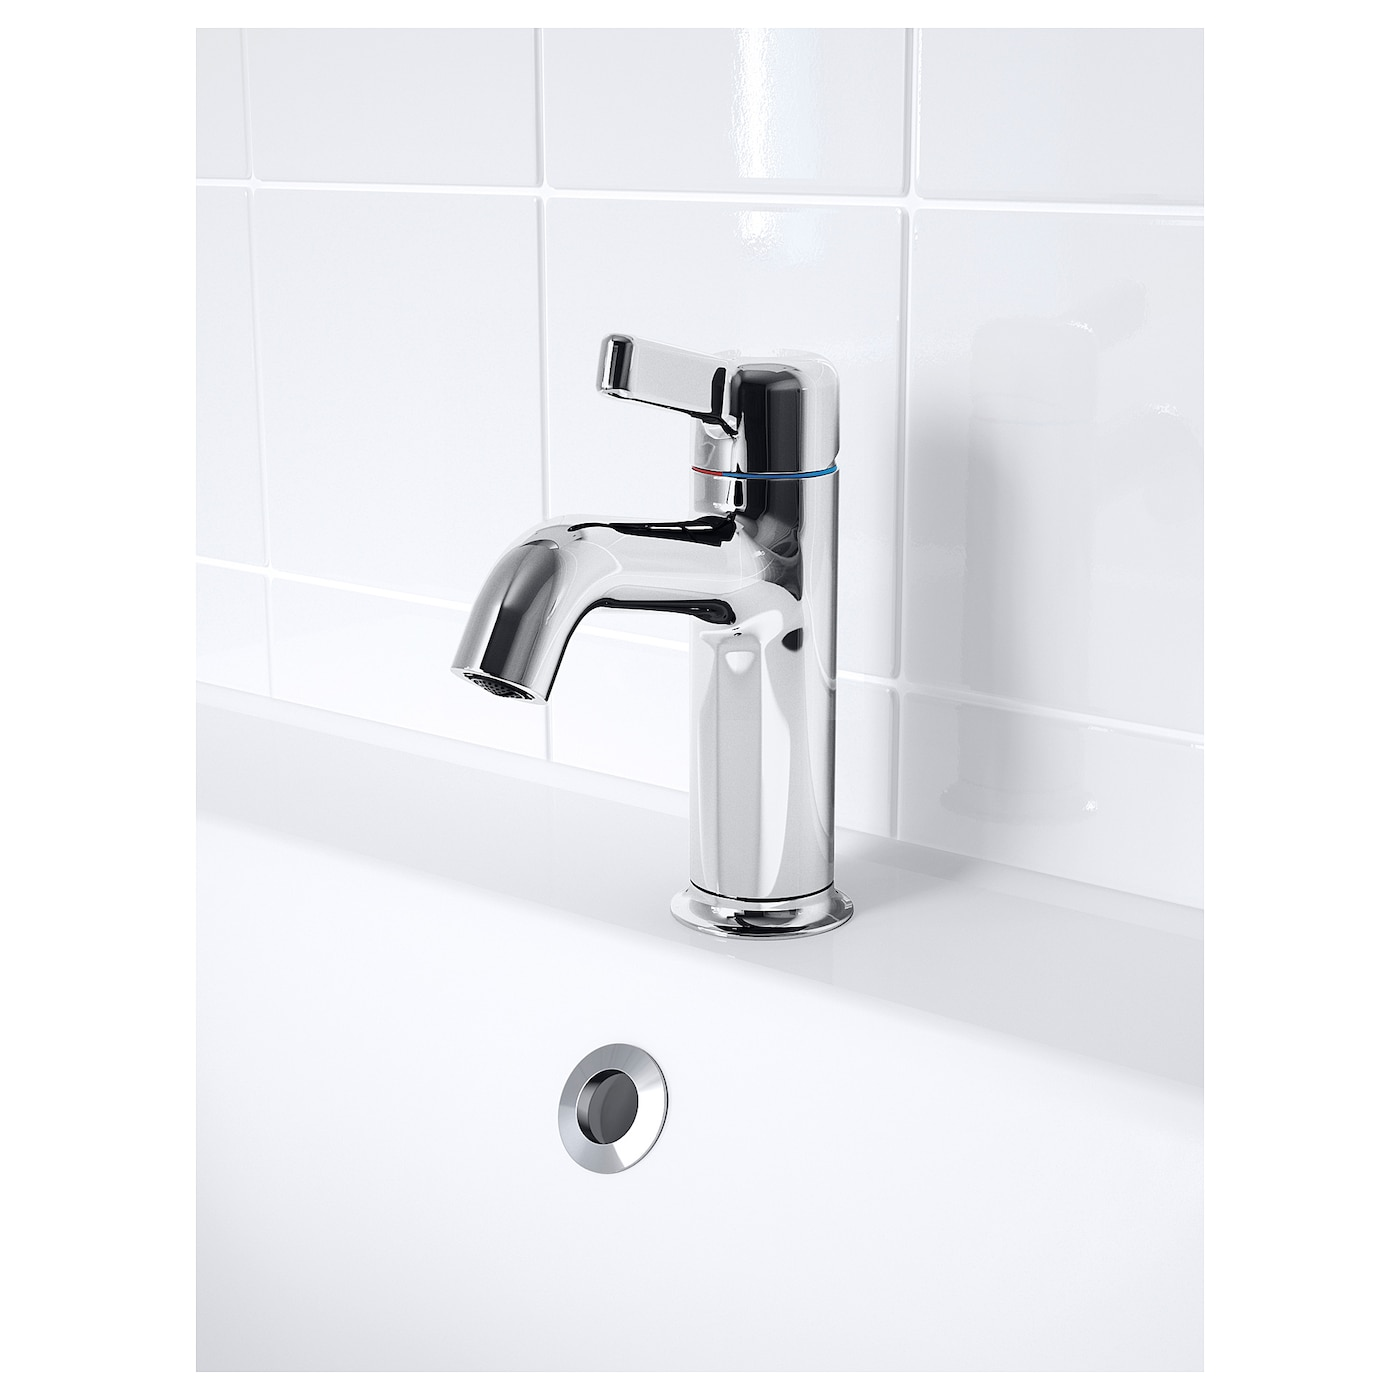 IKEA VOXNAN wash-basin mixer tap with strainer